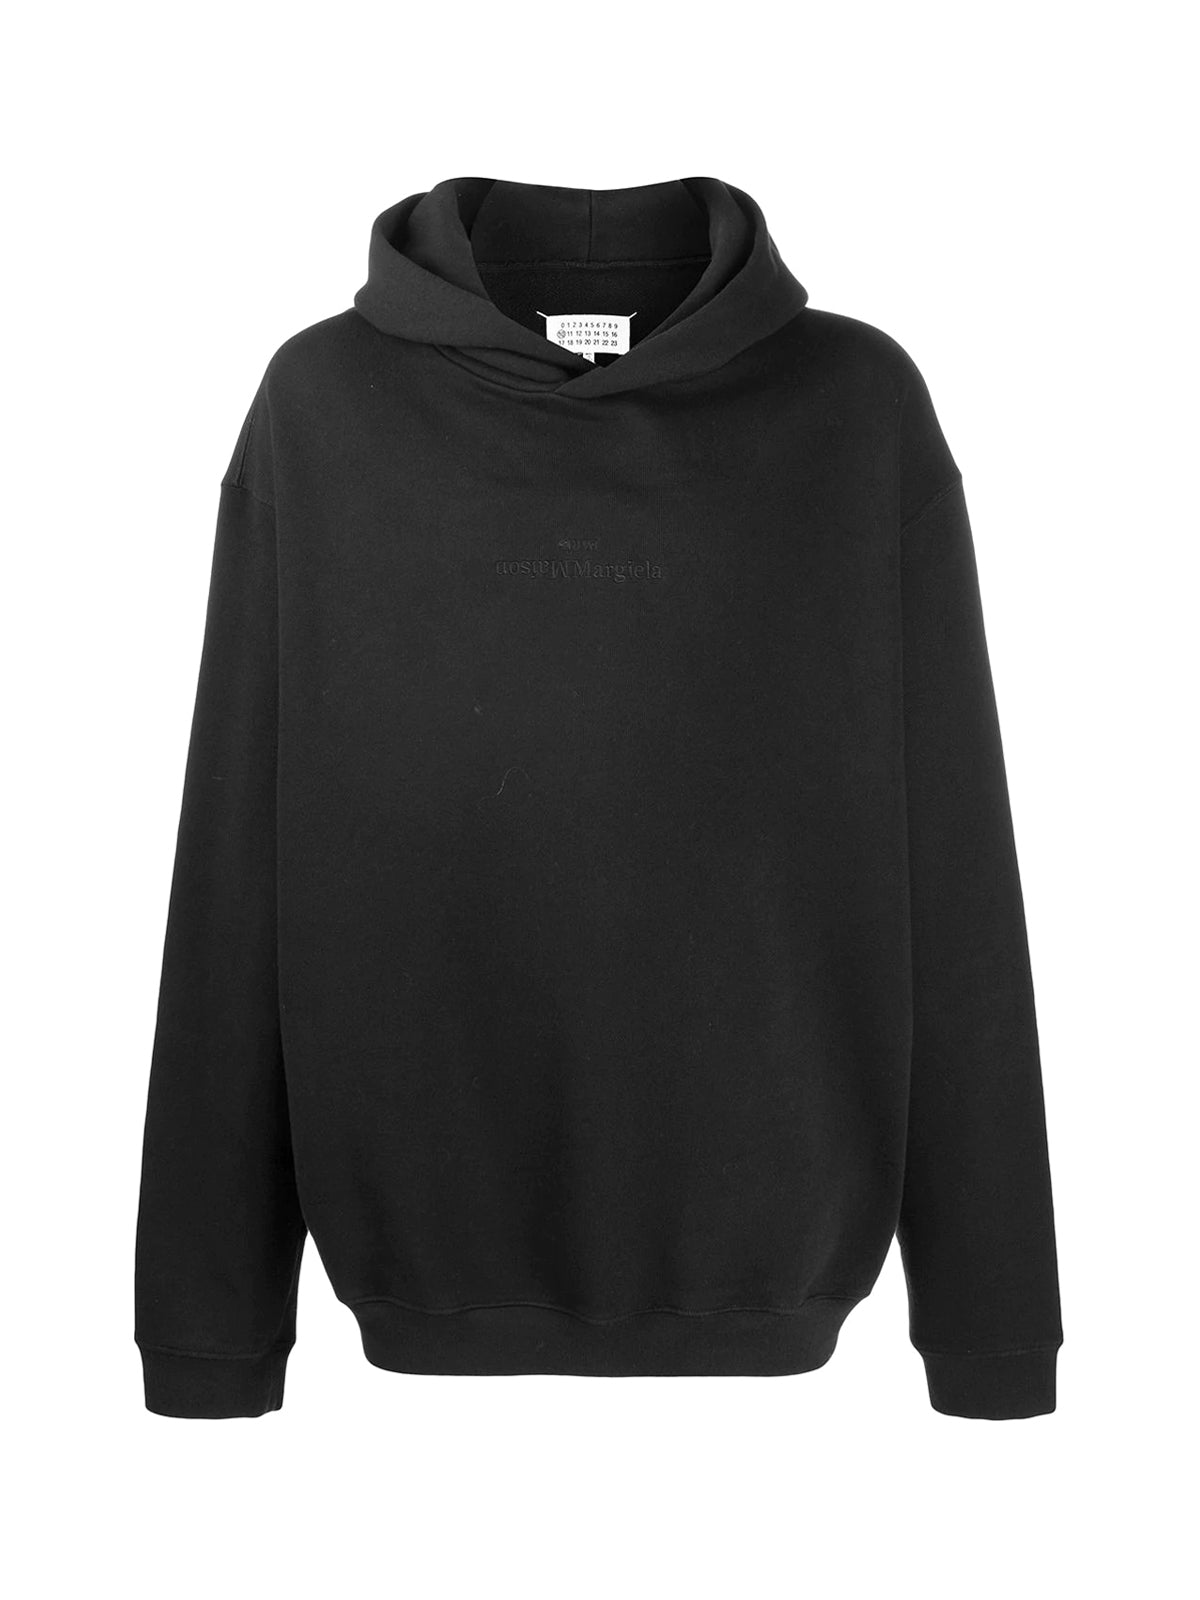 Embroided hoodie